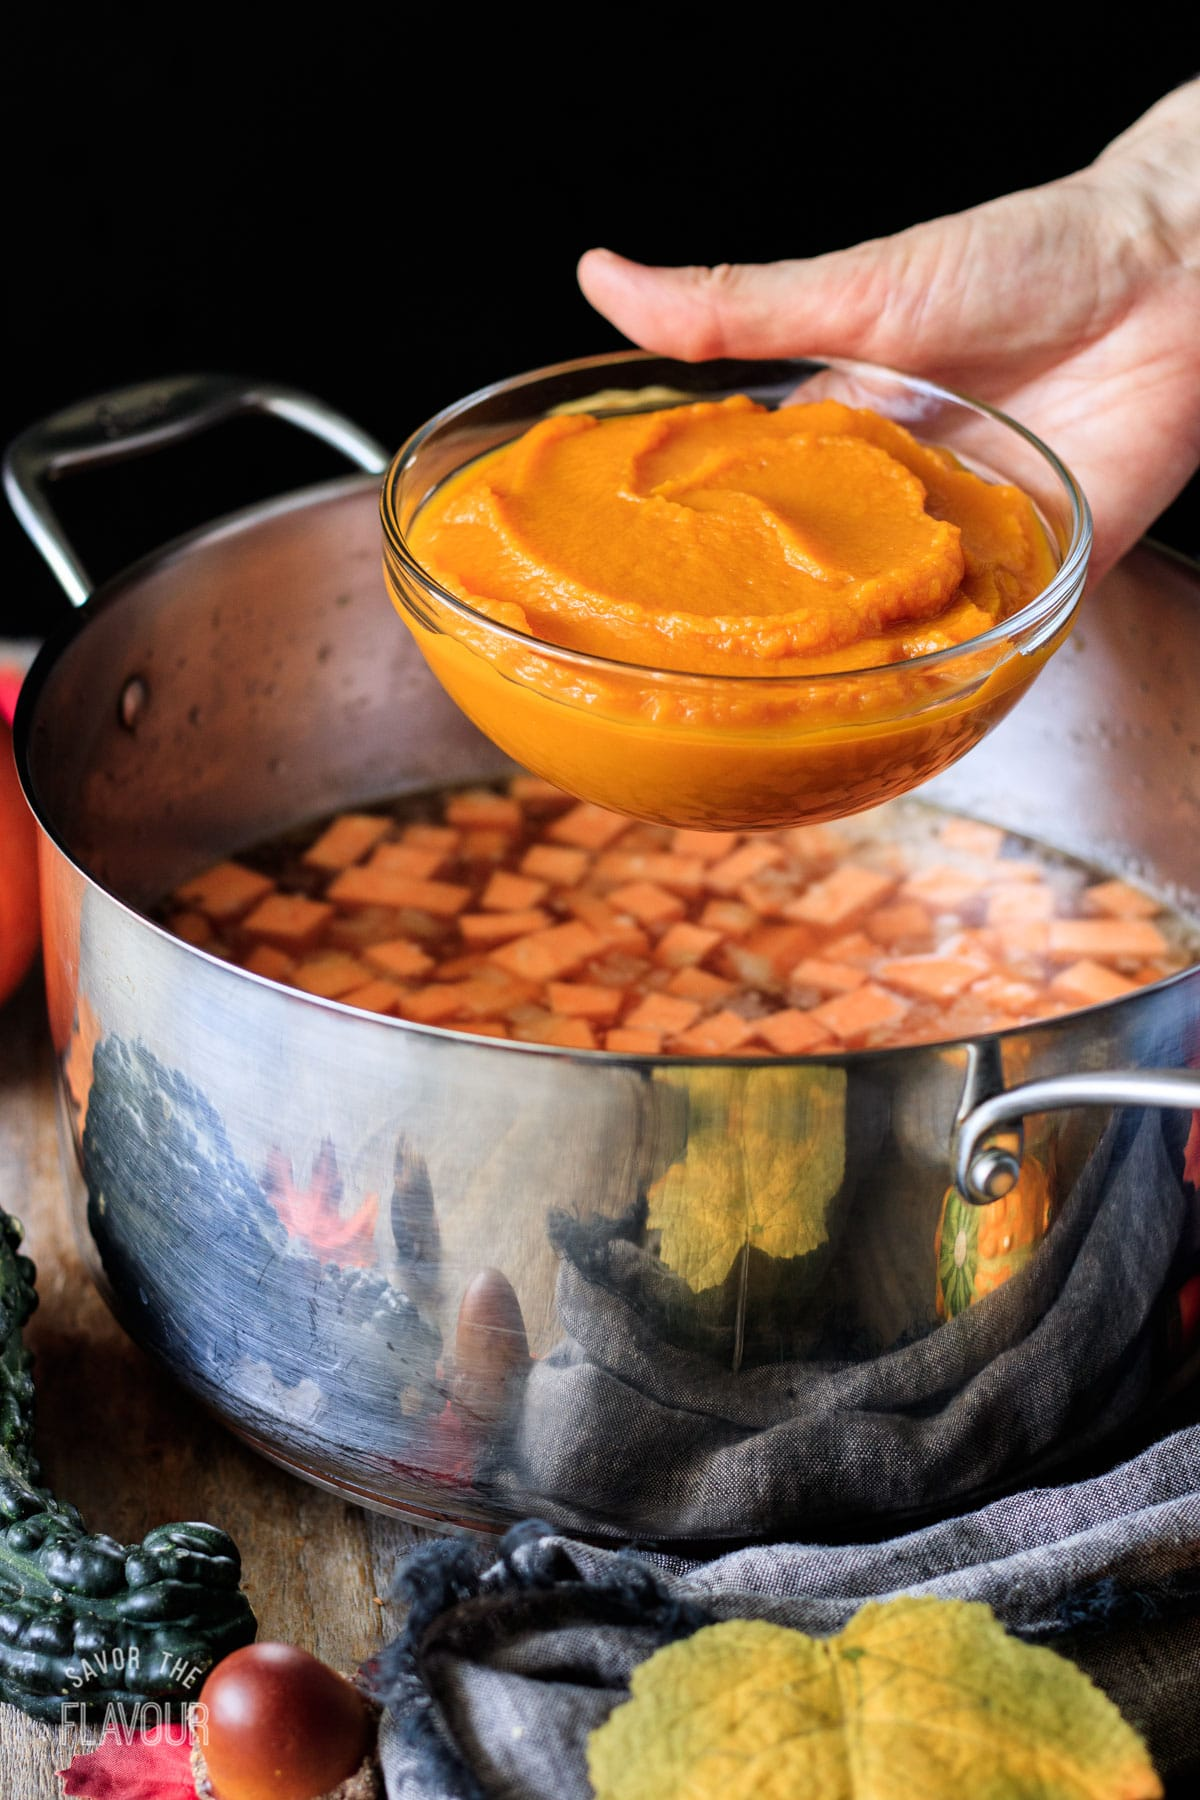 person holding a bowl of pumpkin puree